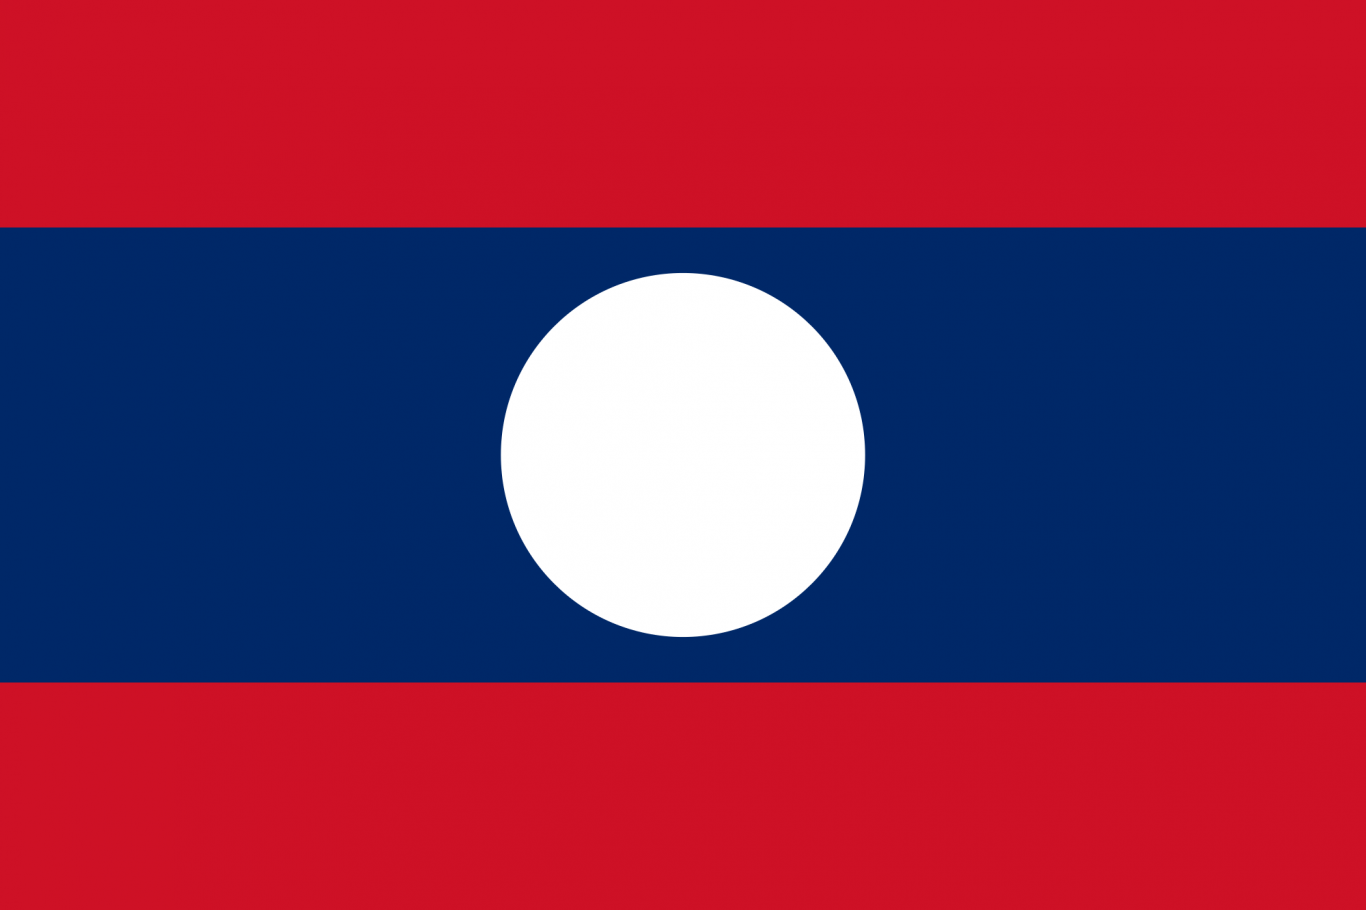 Lao Trademark, Trademark in Laos